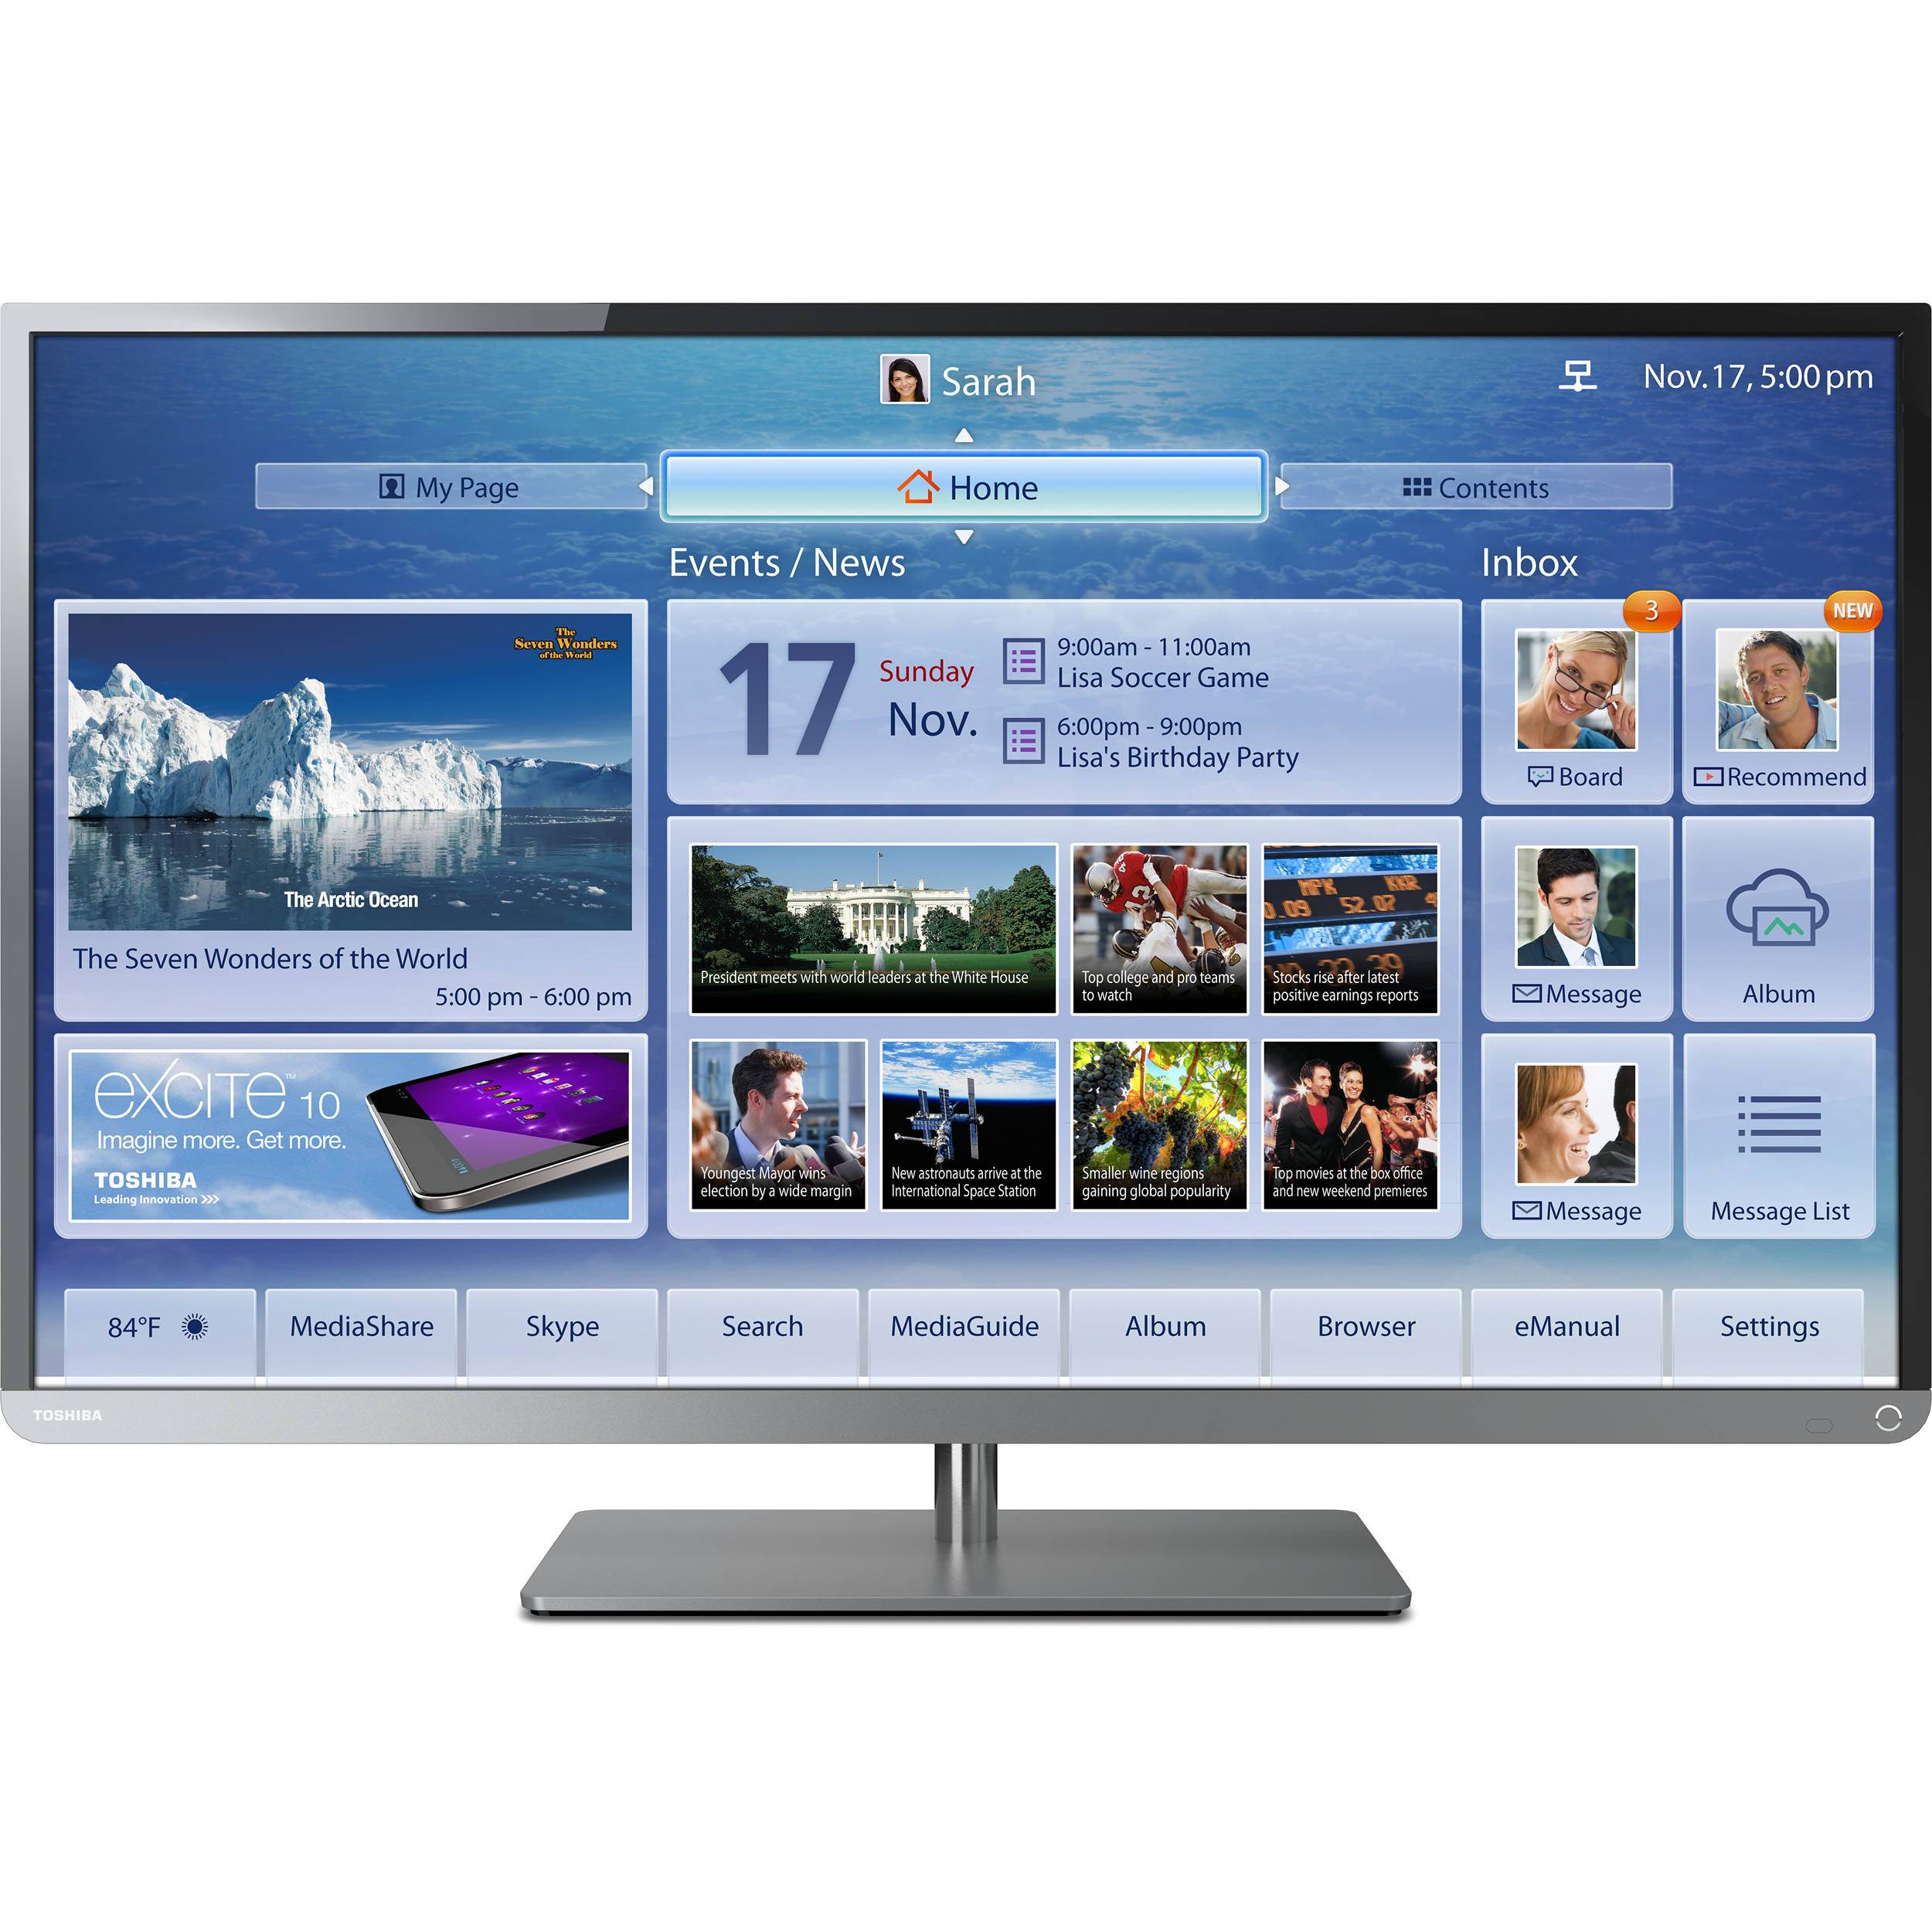 toshiba 39l4300u 39 class 1080p cloud led tv 39l4300u b h rh bhphotovideo com toshiba 39l4300 manual toshiba 39l4300 manual